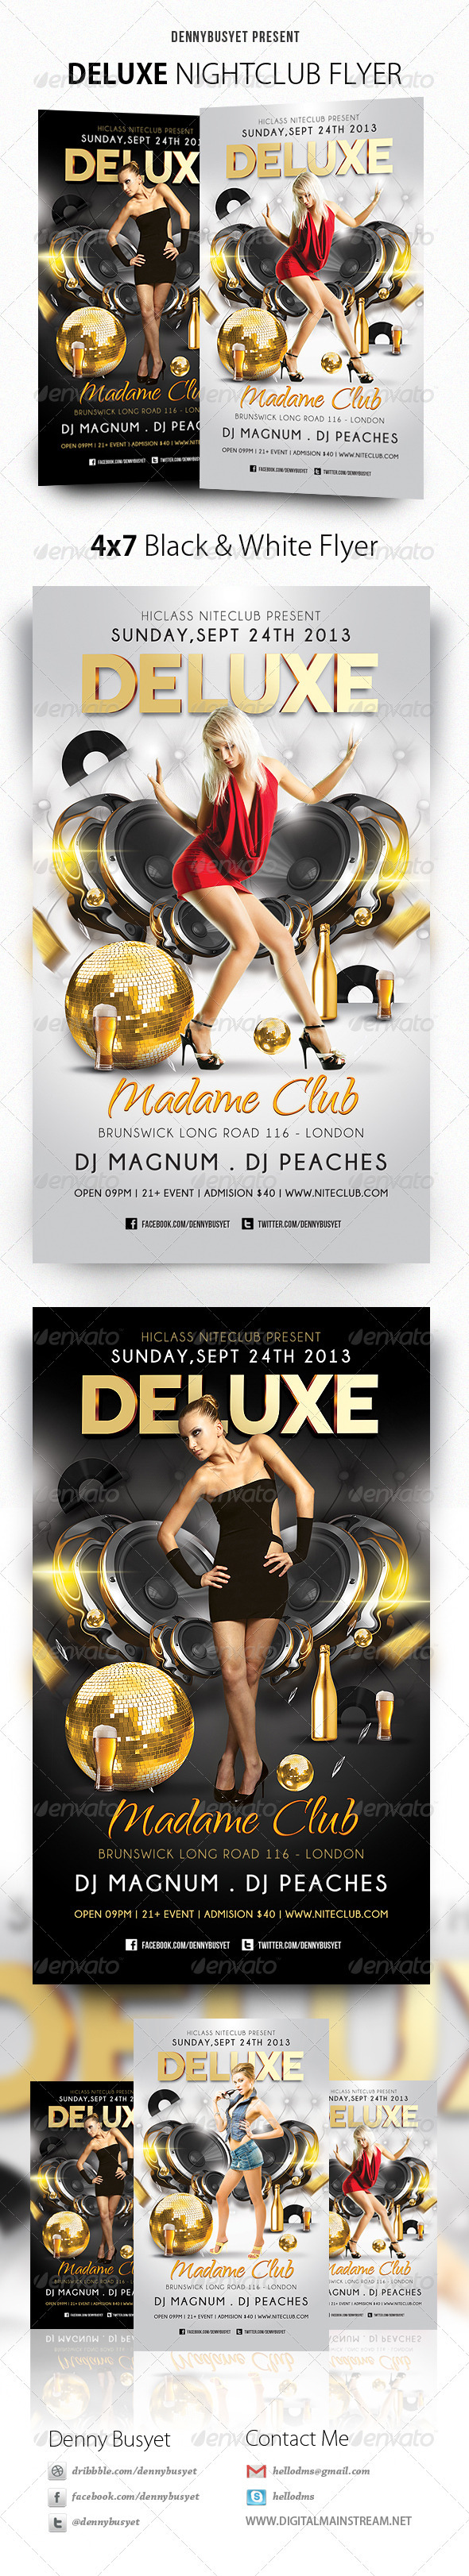 Deluxe Nightclub Flyer - Events Flyers